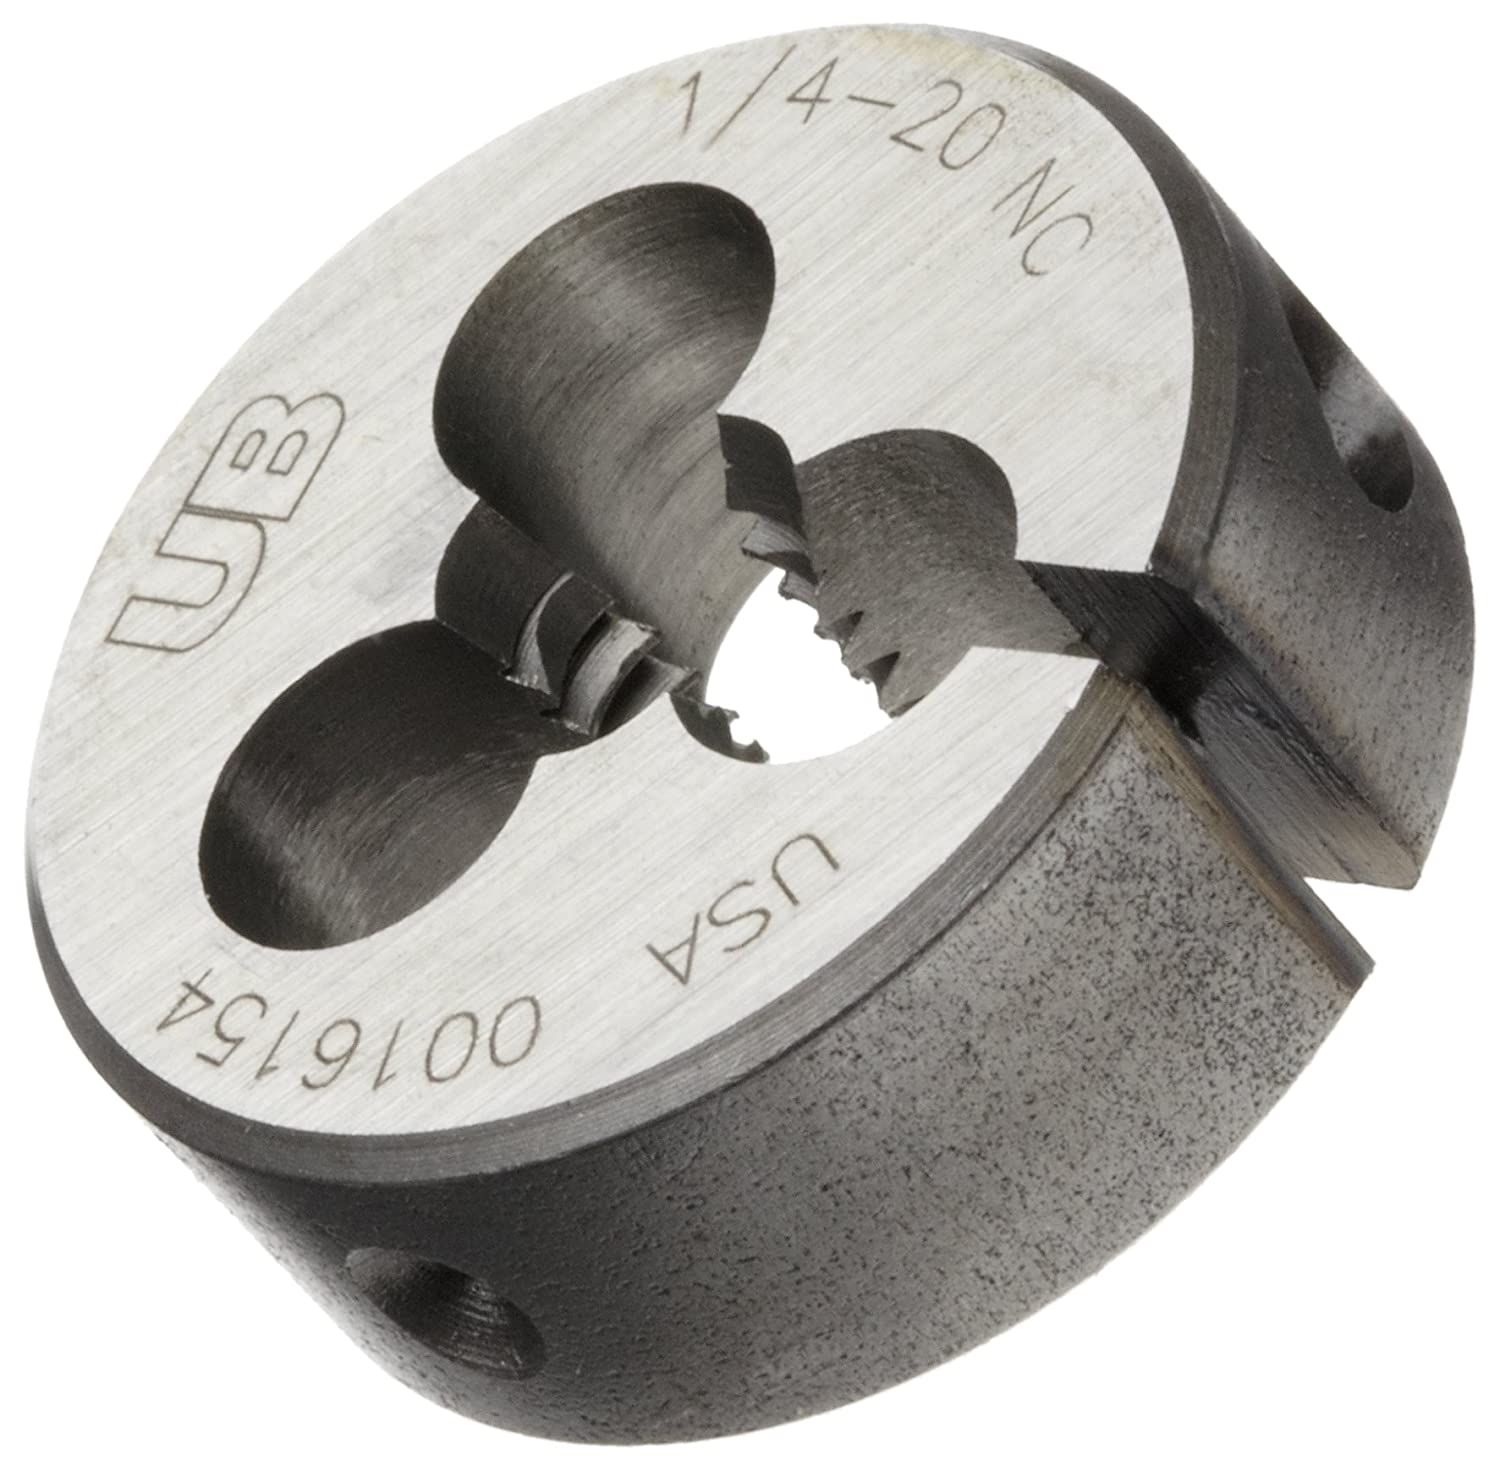 Bright UNC Union Butterfield 2010 Finish 1//4-20 Thread Size 1 OD 1//4-20 Thread Size Precision Dormer 1410064 Carbon Steel Round Threading Die 1 OD Uncoated